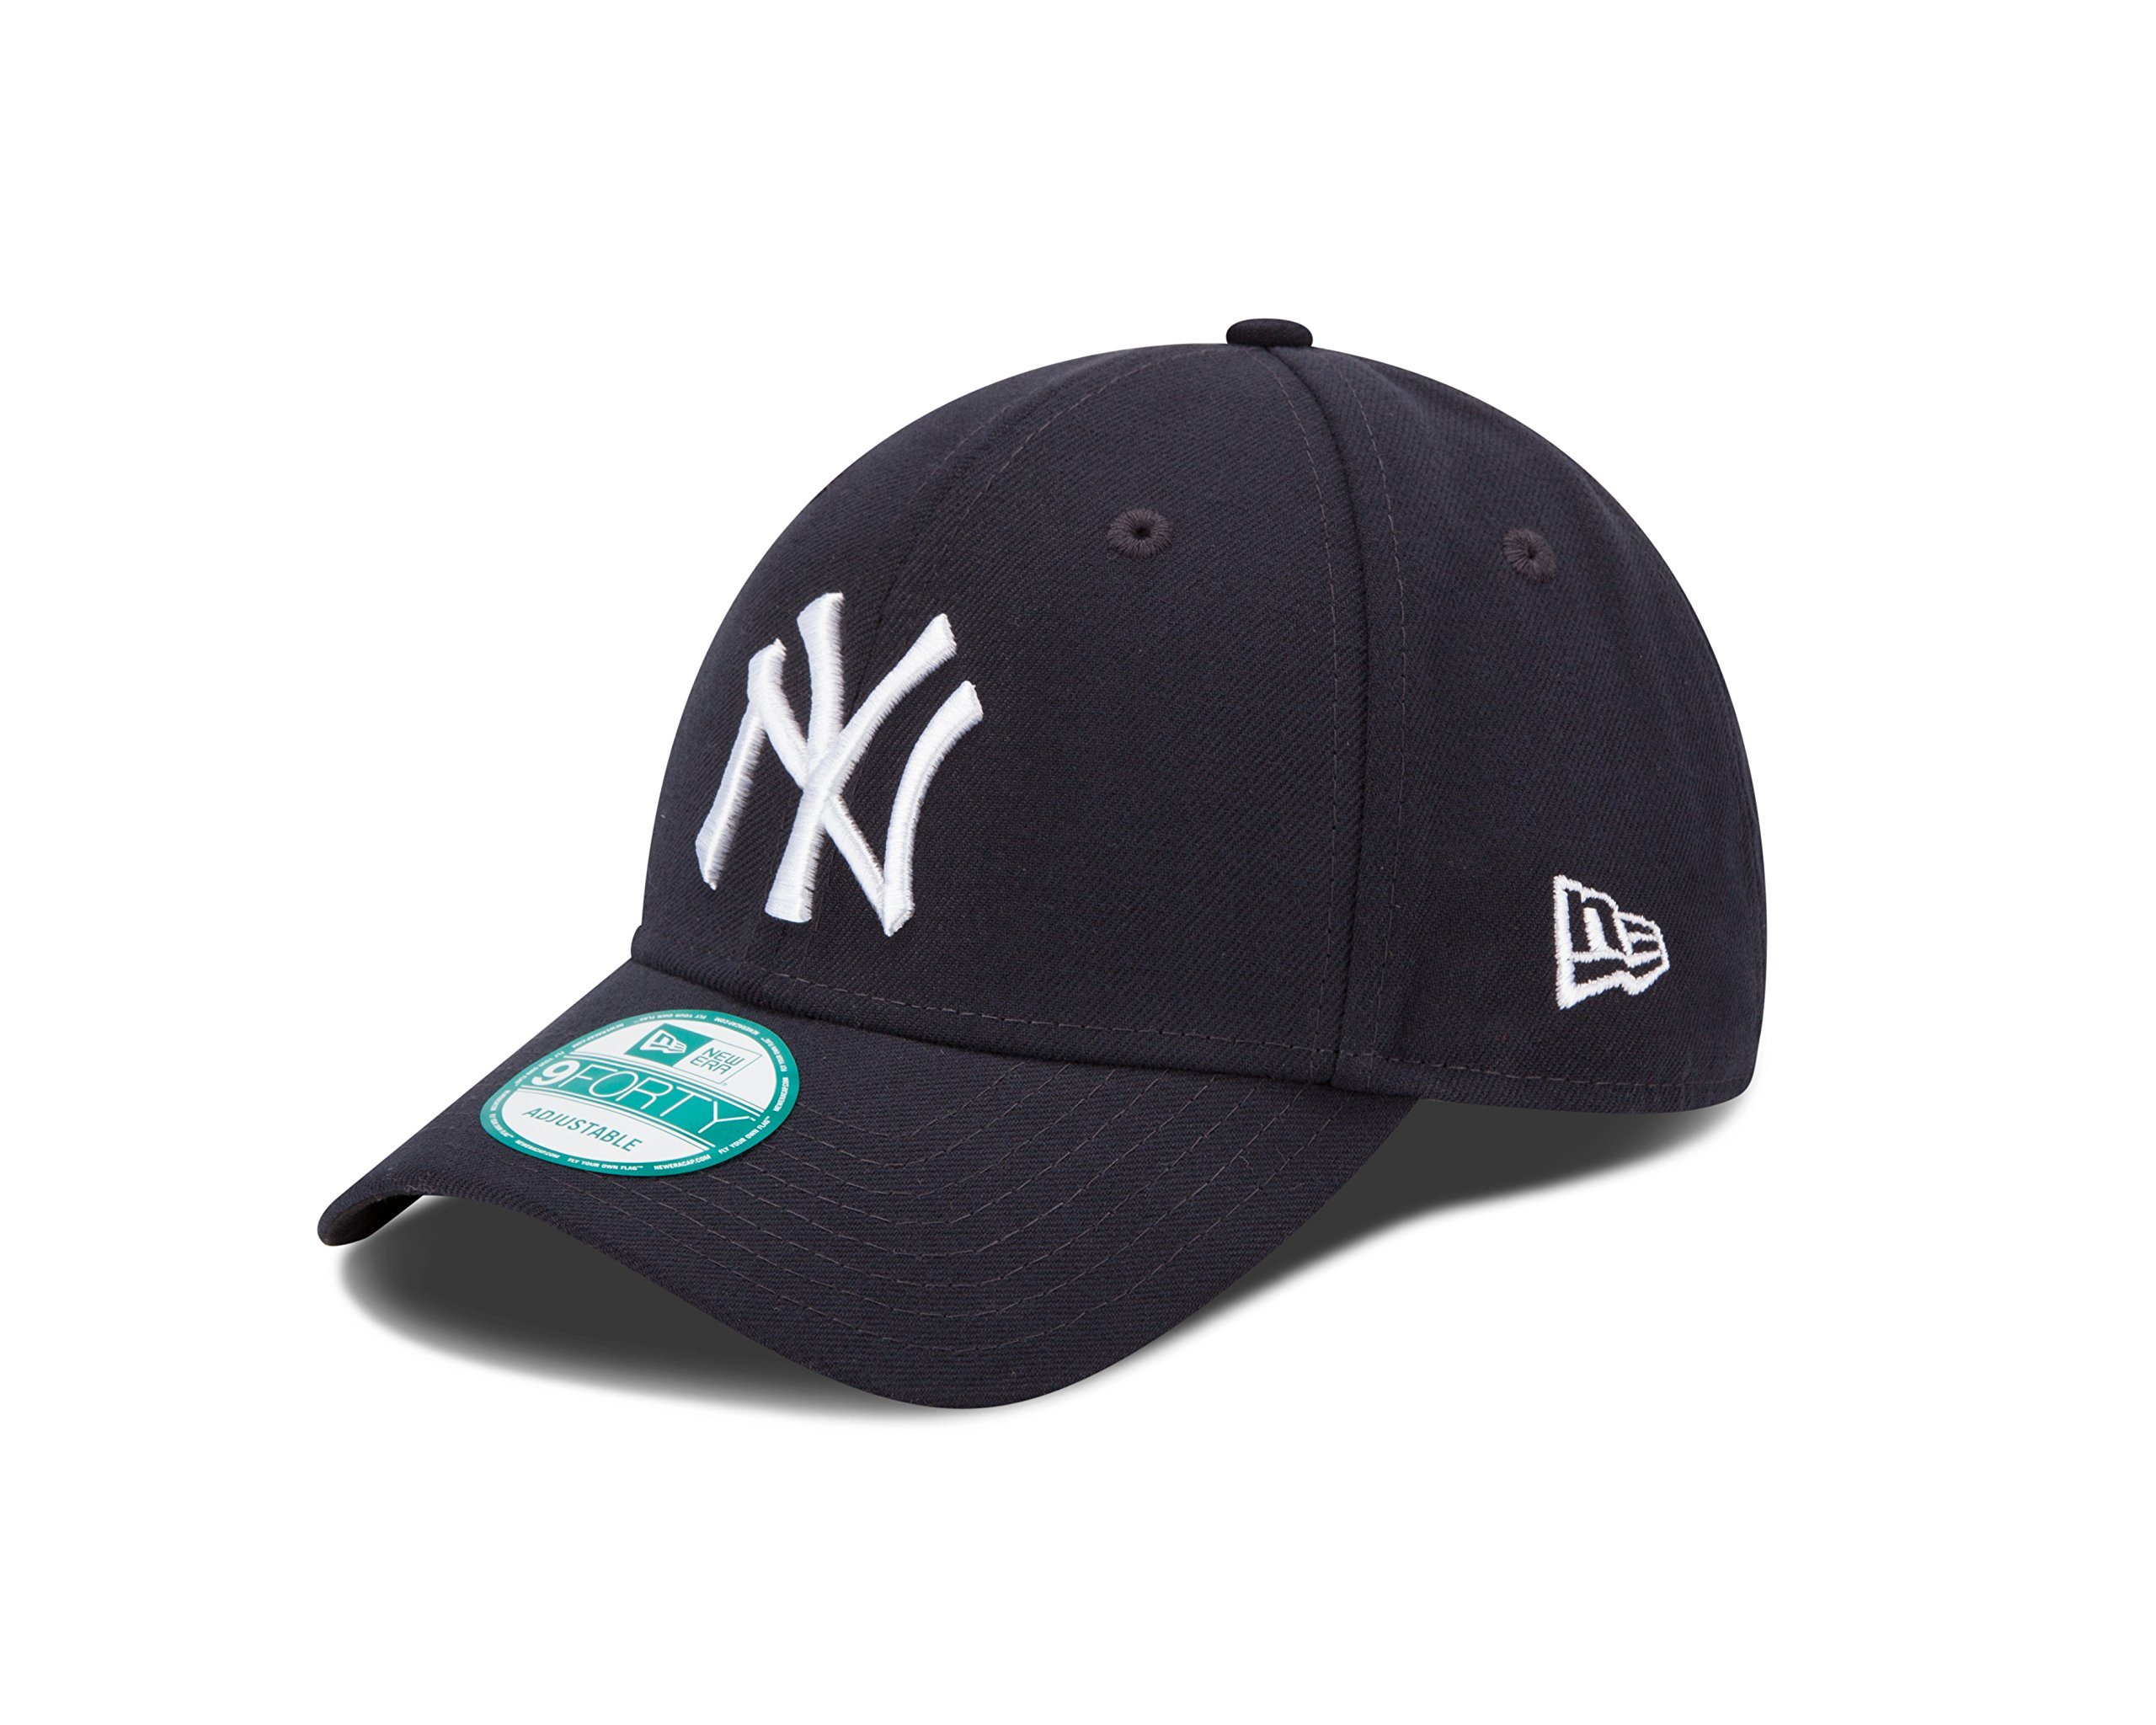 e01e1ca7feb6b ... purchase new era mlb the league 9forty home adjustable hat 23f3d 87953